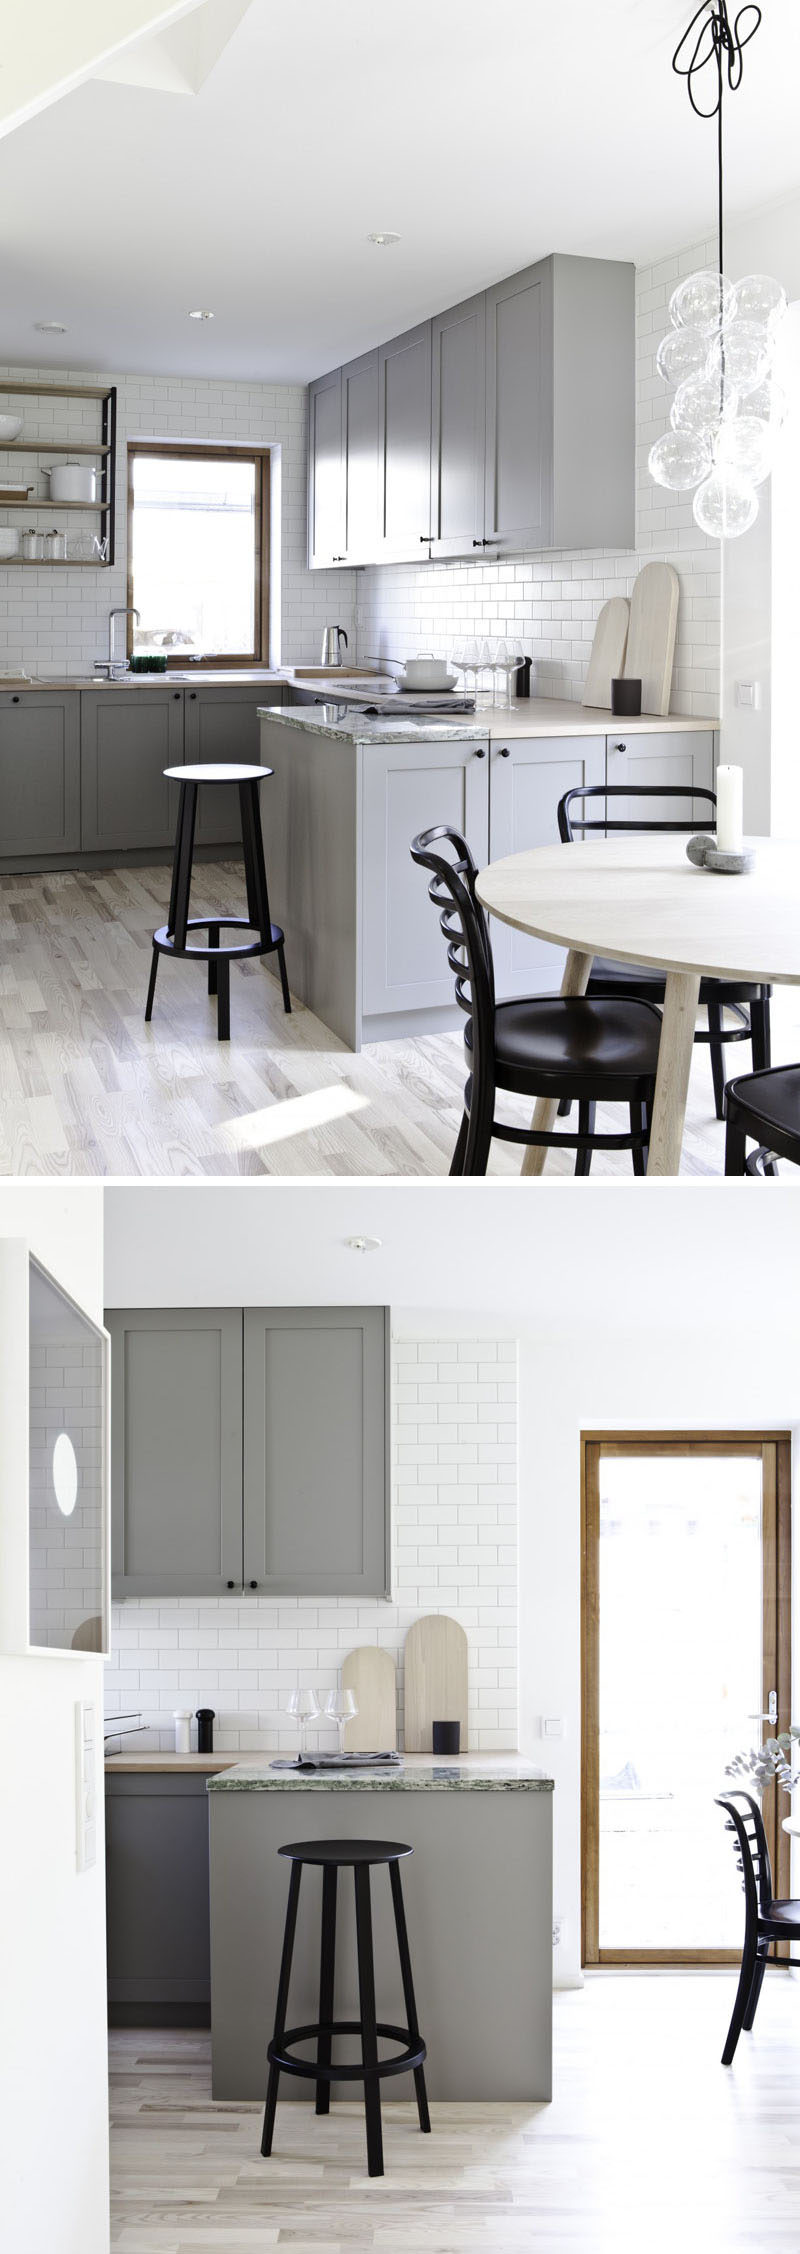 12 Examples Of Sophisticated Gray Kitchen Cabinets // The light gray cabinets, the open shelving, and the white subway tiles in this kitchen make it feel mature, bright, and modern.